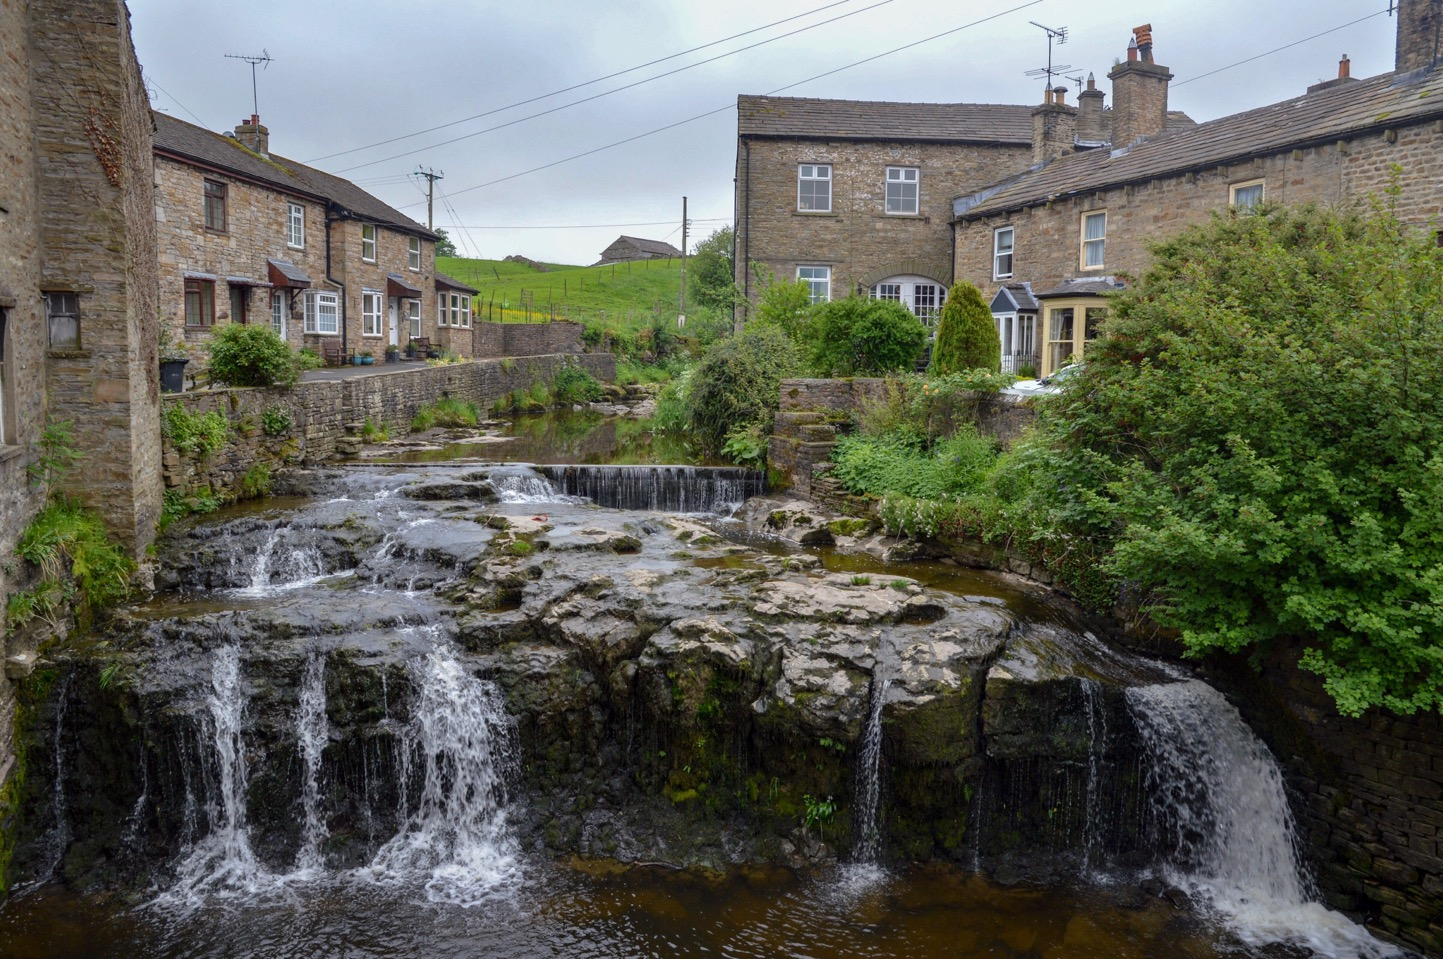 Waterfall, Hawes, North Yorkshire, UK